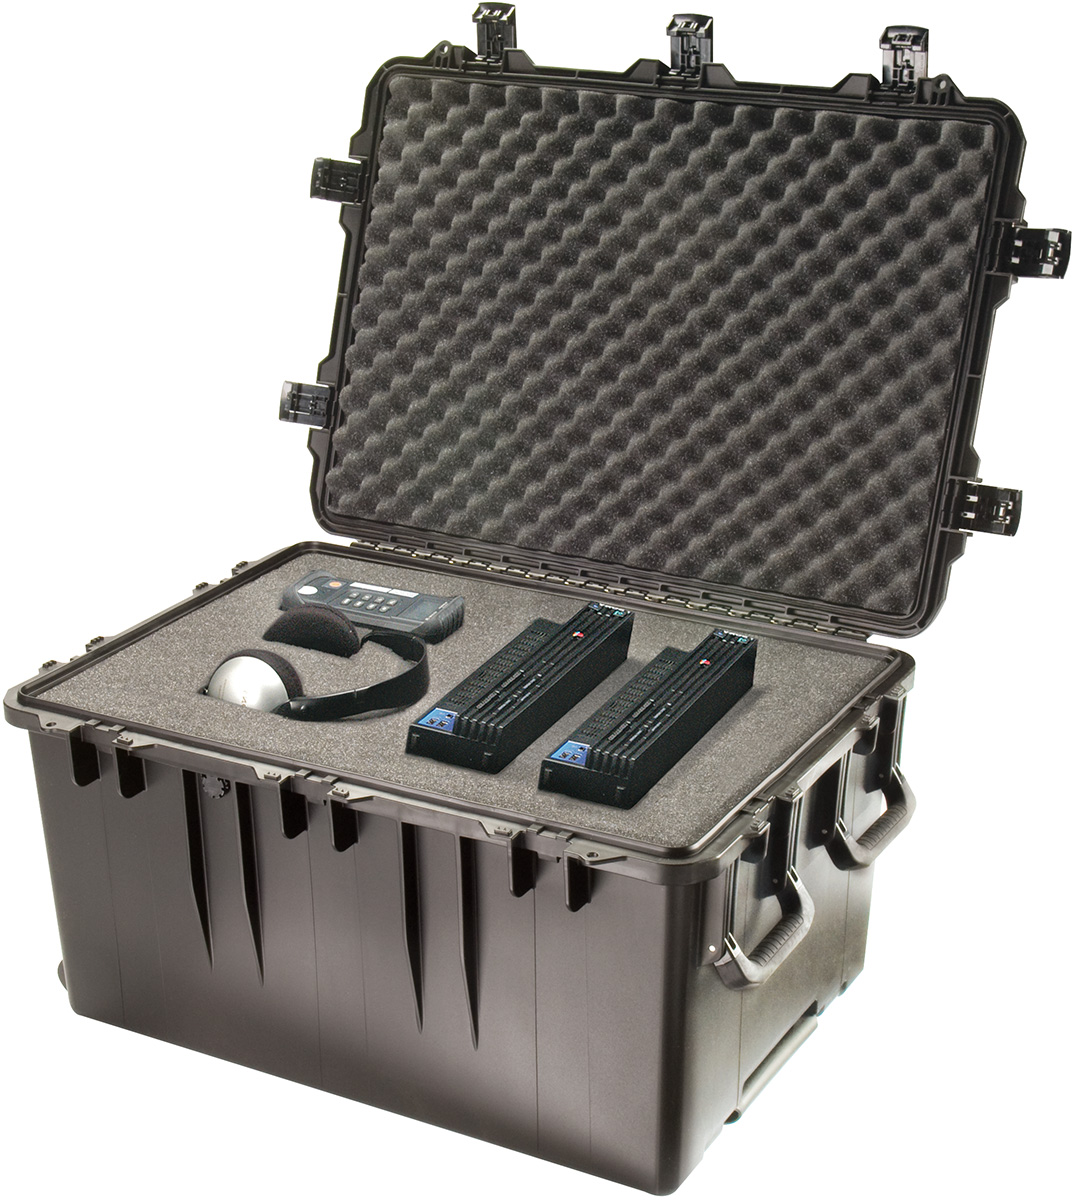 pelican peli products iM3075 large storm plastic flight gear case hardigg hardcase